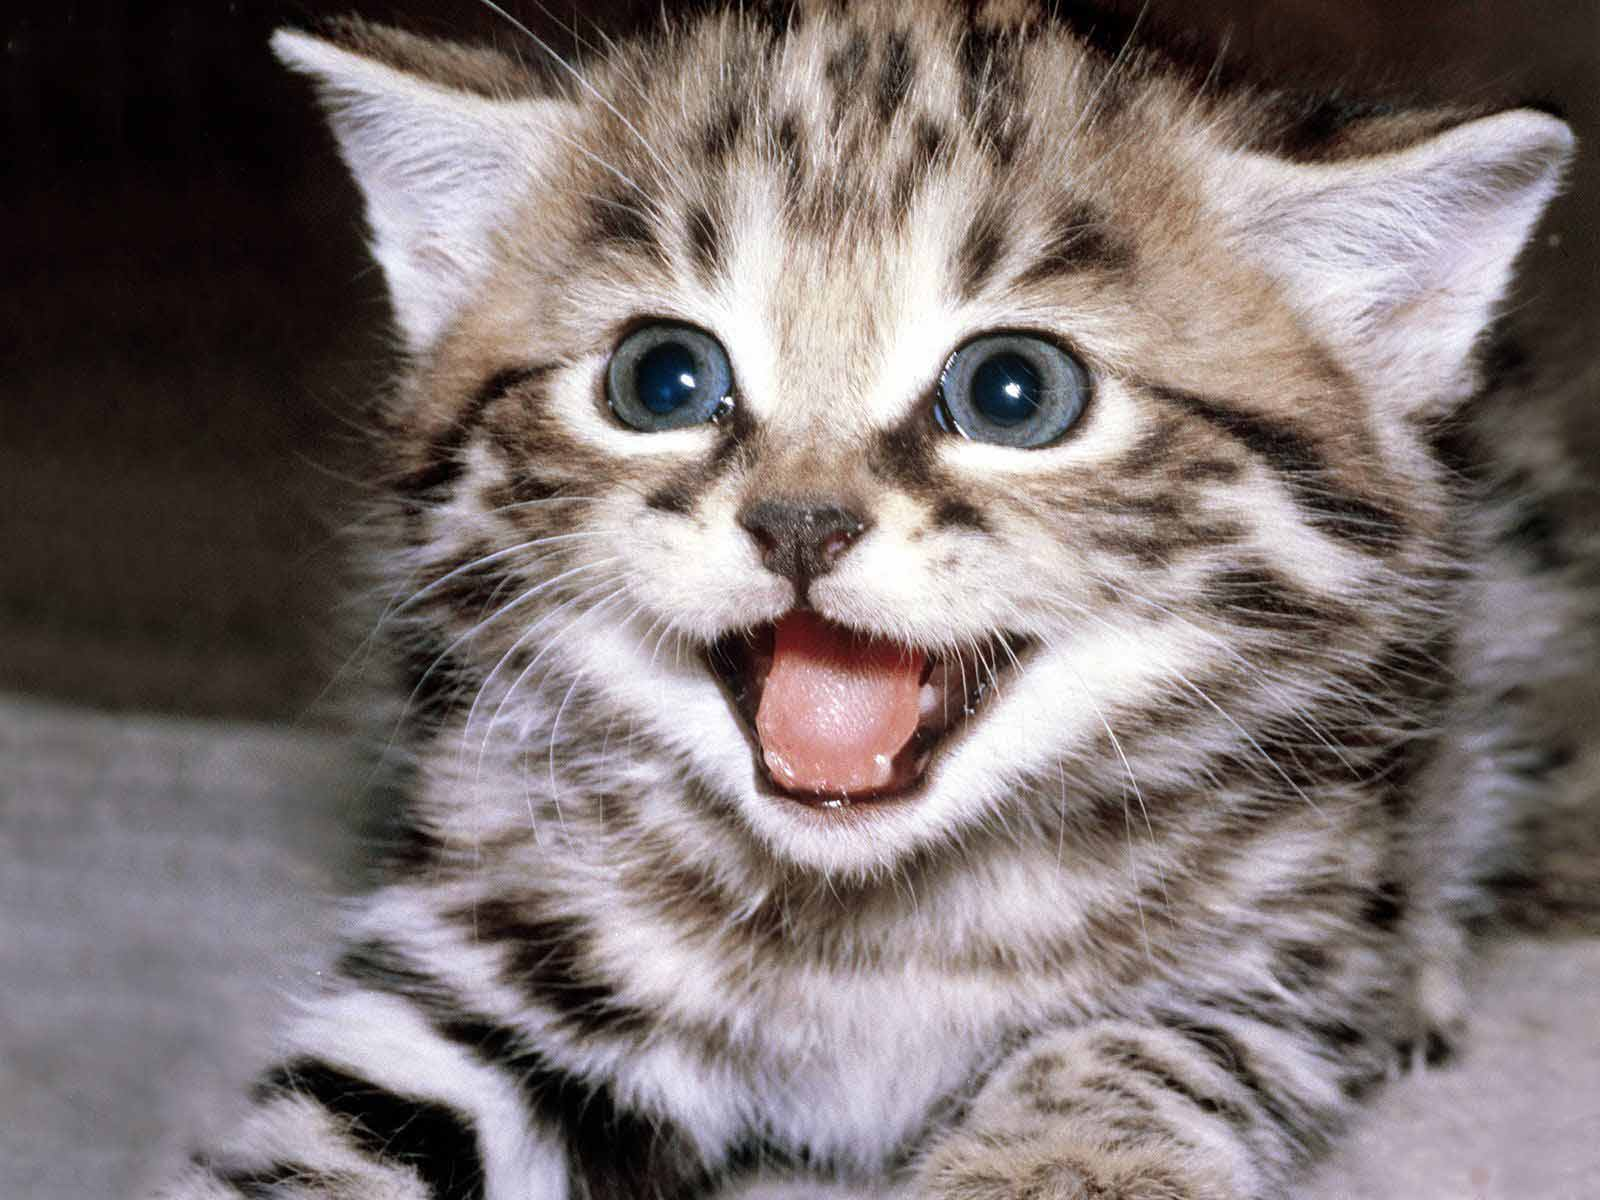 Playful Kitten with Open Mouth 318.82 Kb